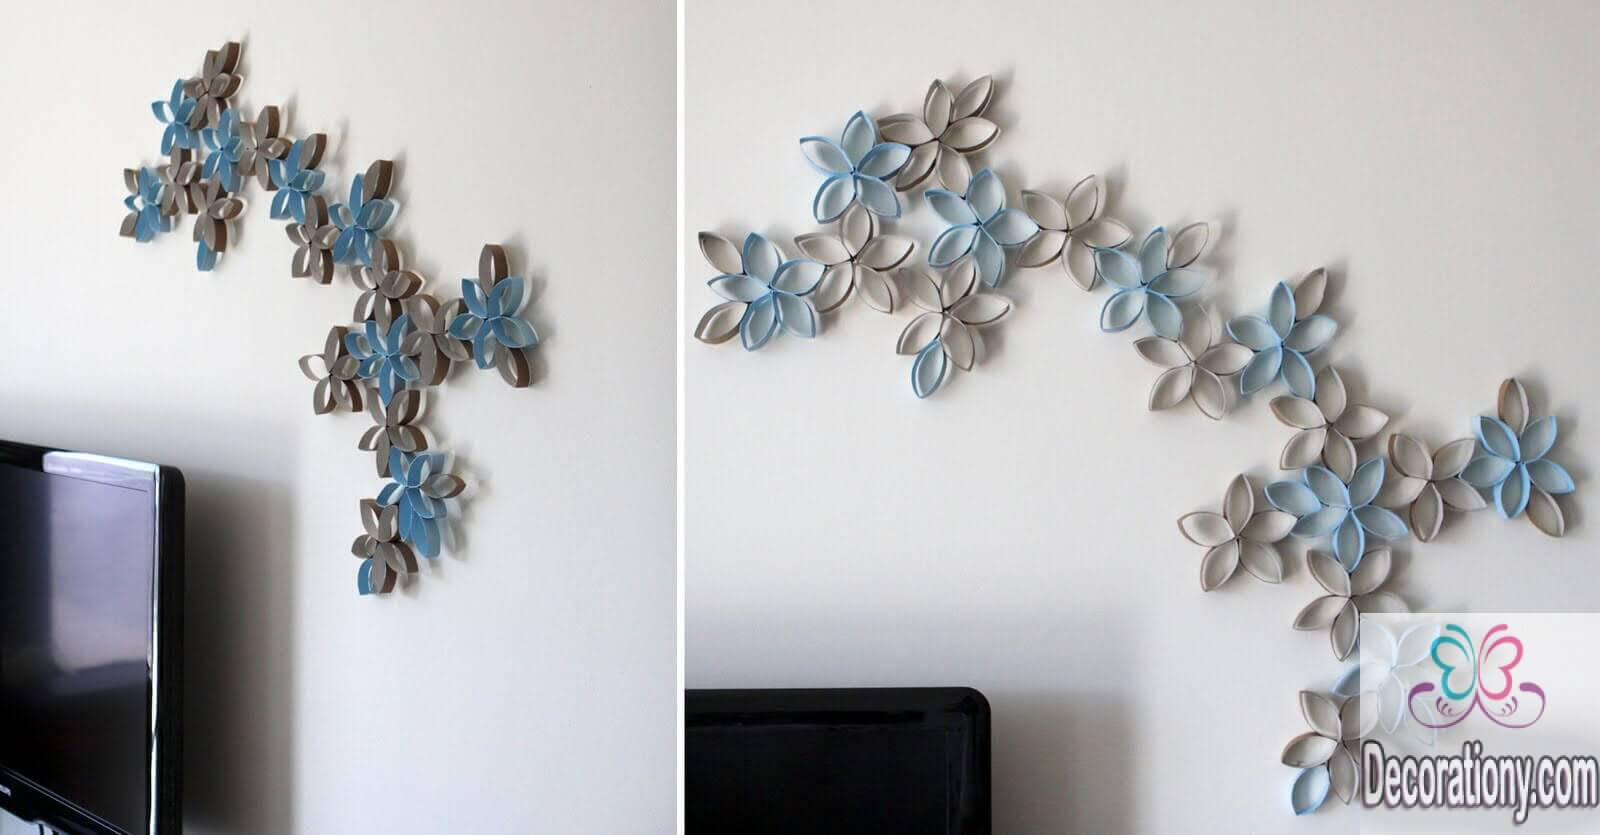 45 living room wall decor ideas living room - Paper decorations for room ...